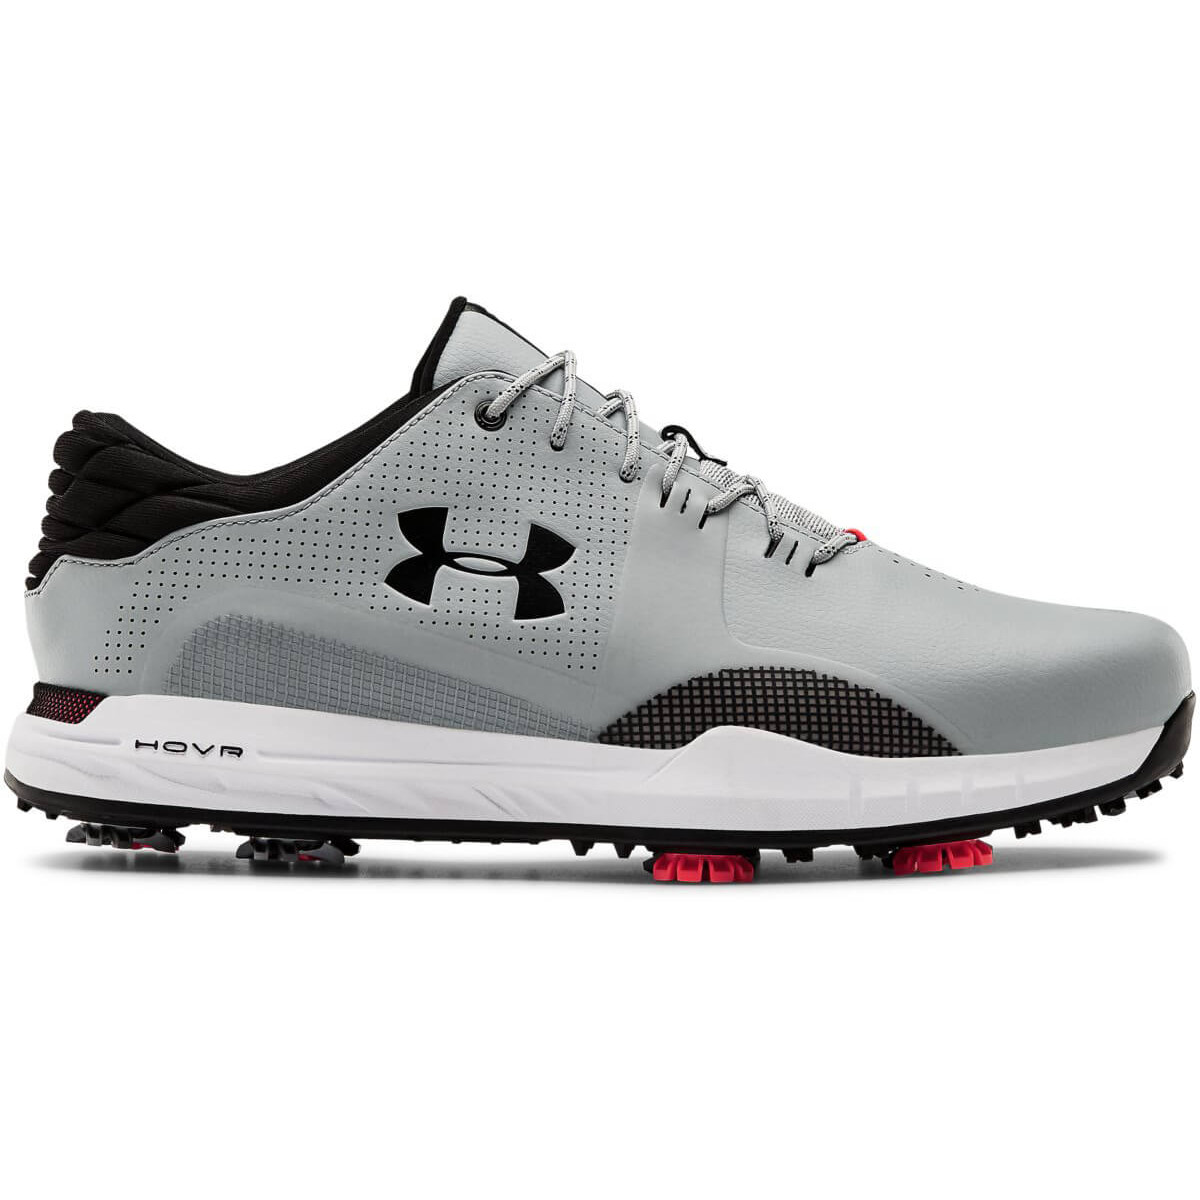 Under Armour Men's 2020 HOVR Matchplay Grey Golf Shoe